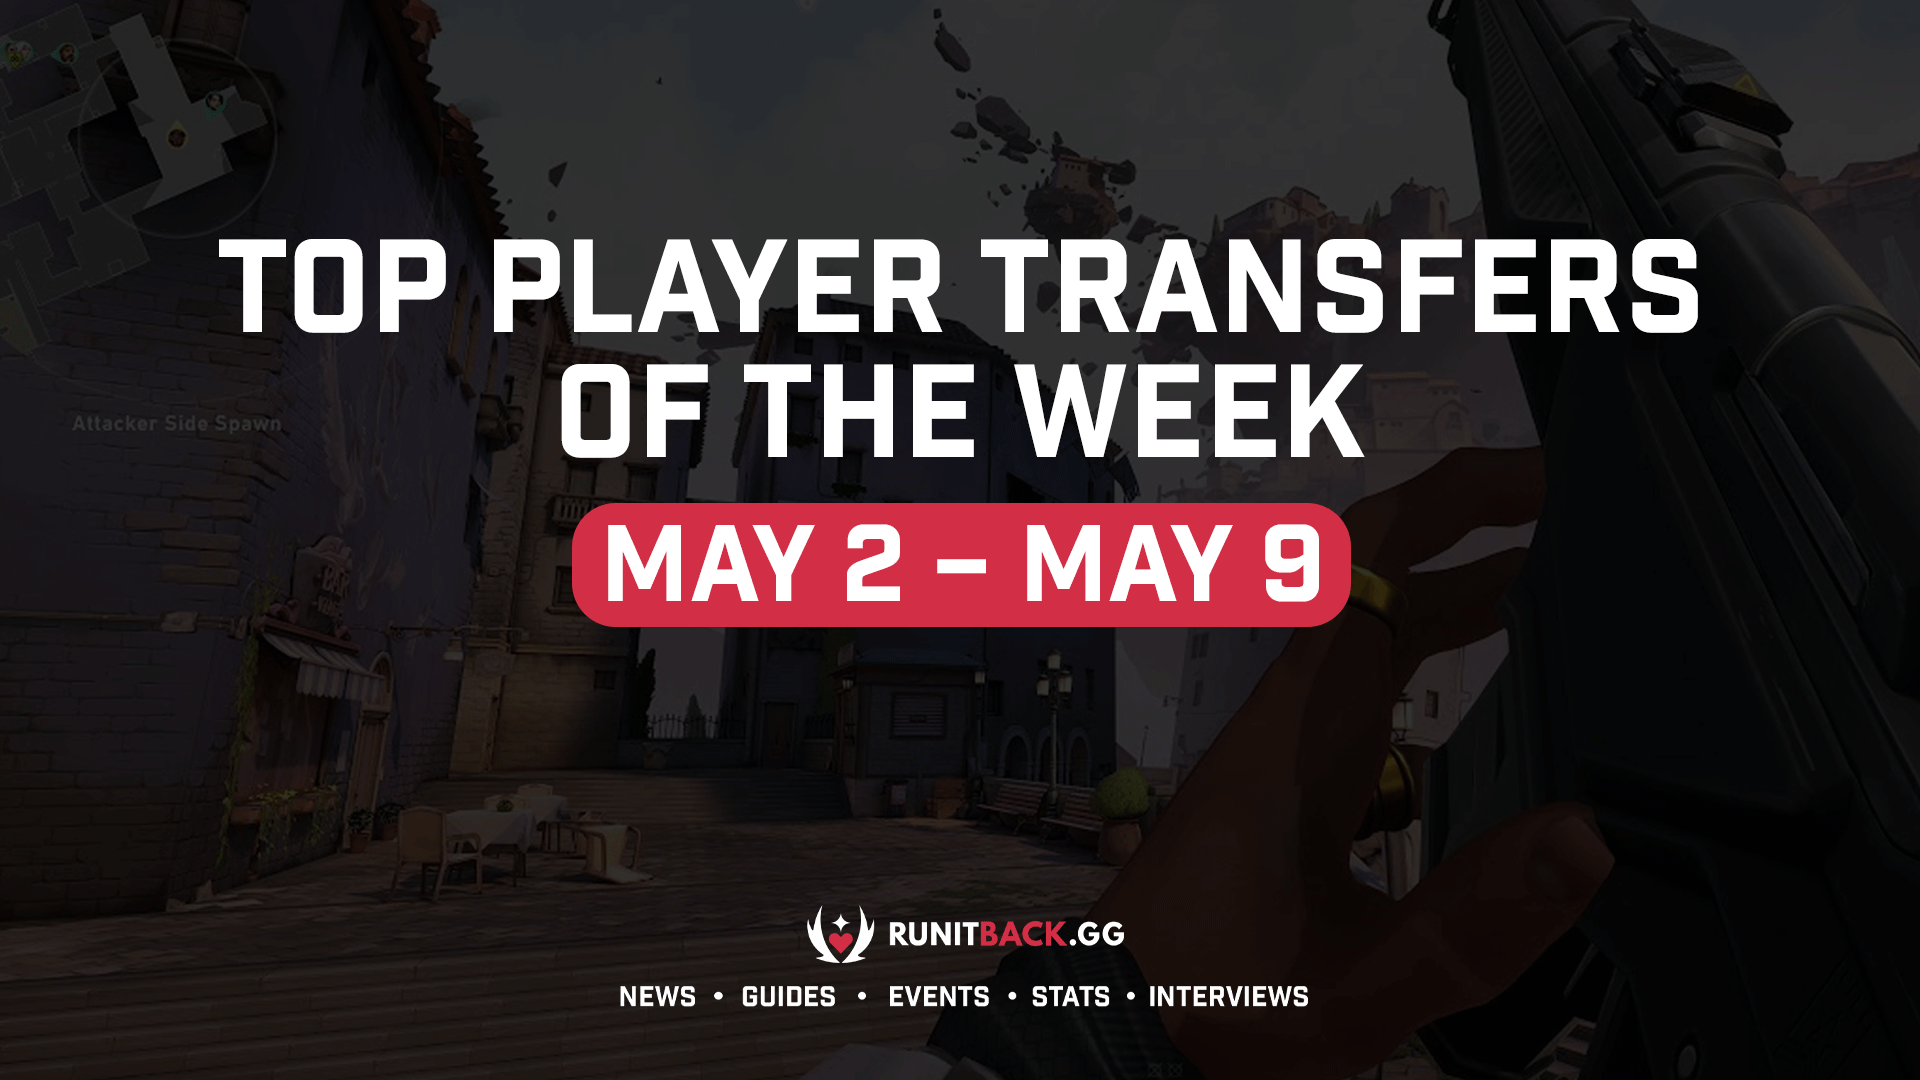 Top Player Transfers of the Week: May 2 – May 9